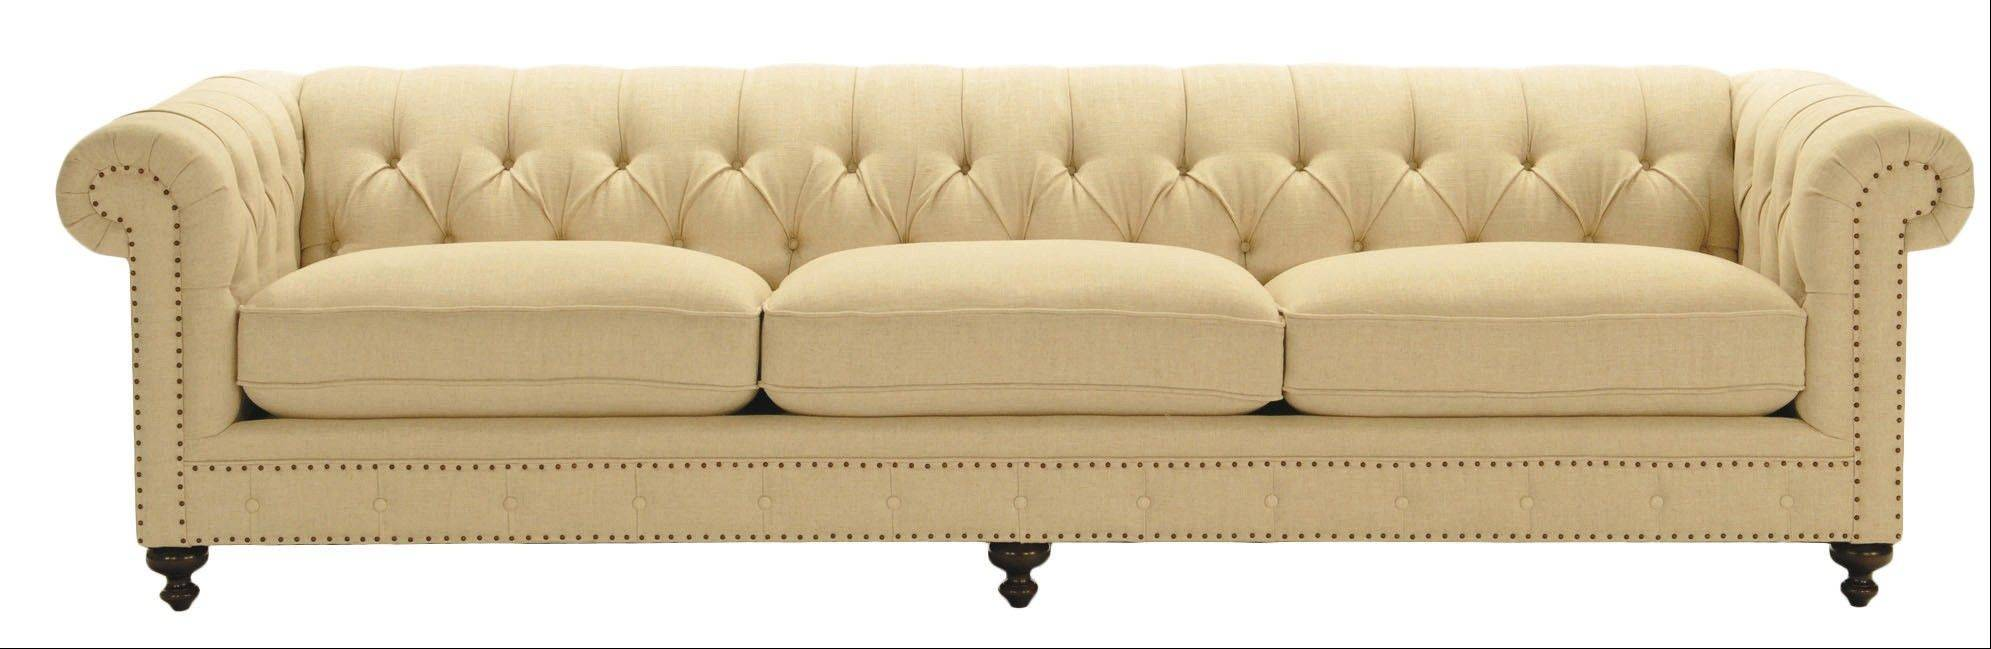 The button-tufted, rolled-back Chesterfield sofa is popular among homeowners who are choosing them in linen or distressed leather.